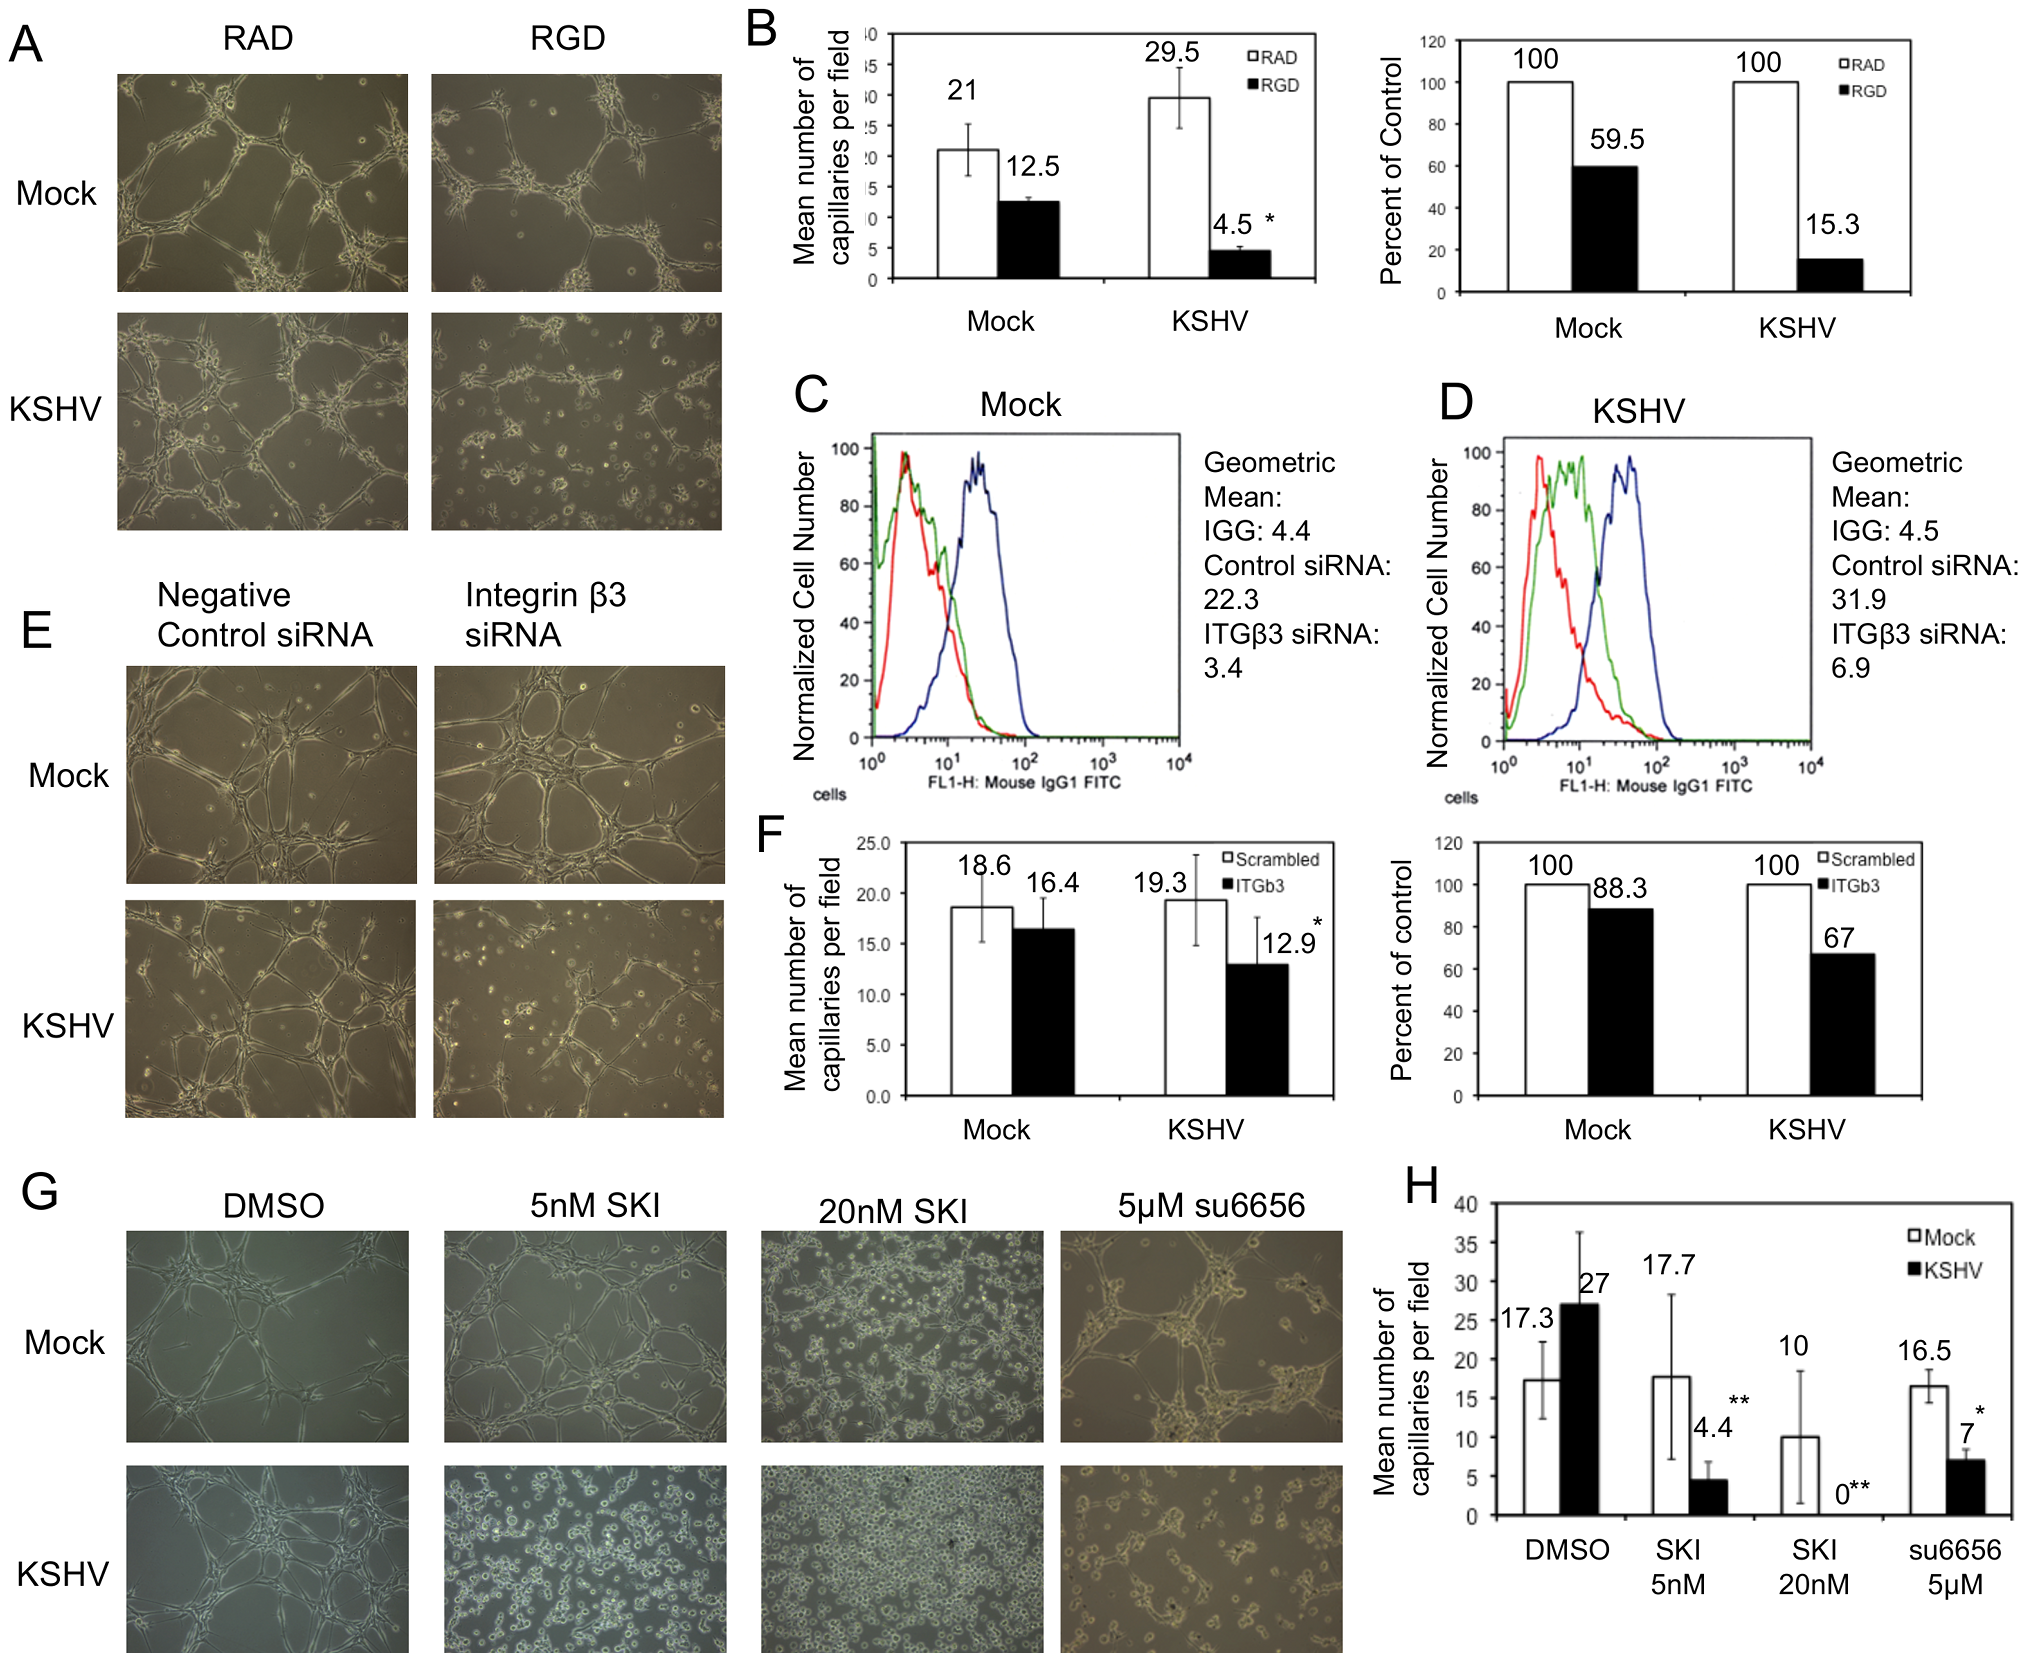 Capillary morphogenesis of KSHV-infected cells requires αVβ3 integrin.